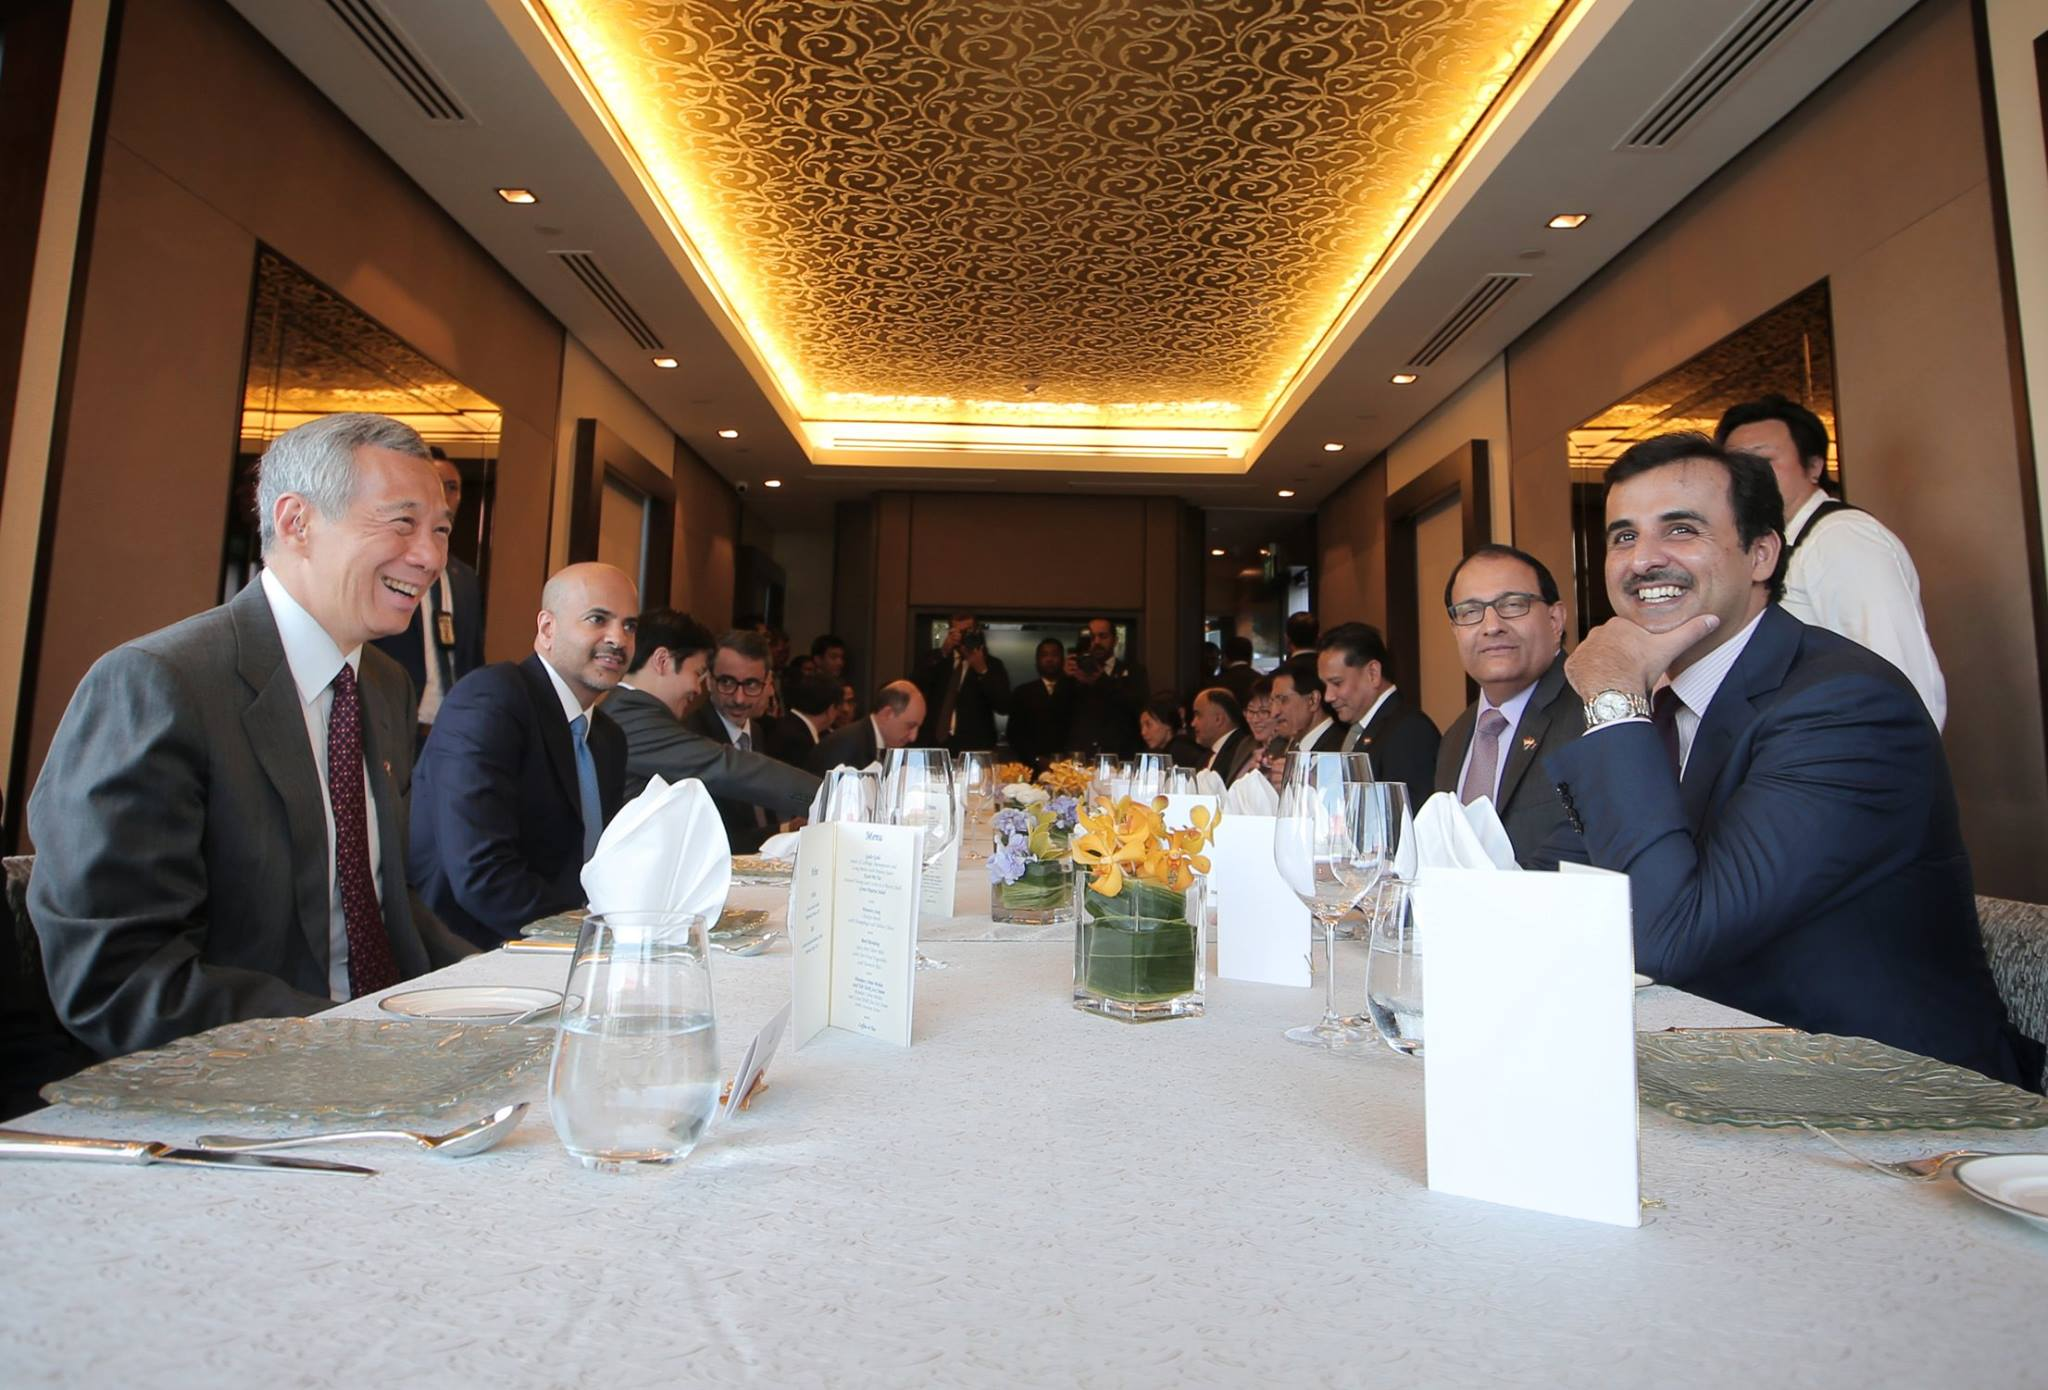 Prime Minister of Singapore Lee Hsien Loong meeting Emir of Qatar Sheikh Tamim bin Hamad Al Thani during lunch.